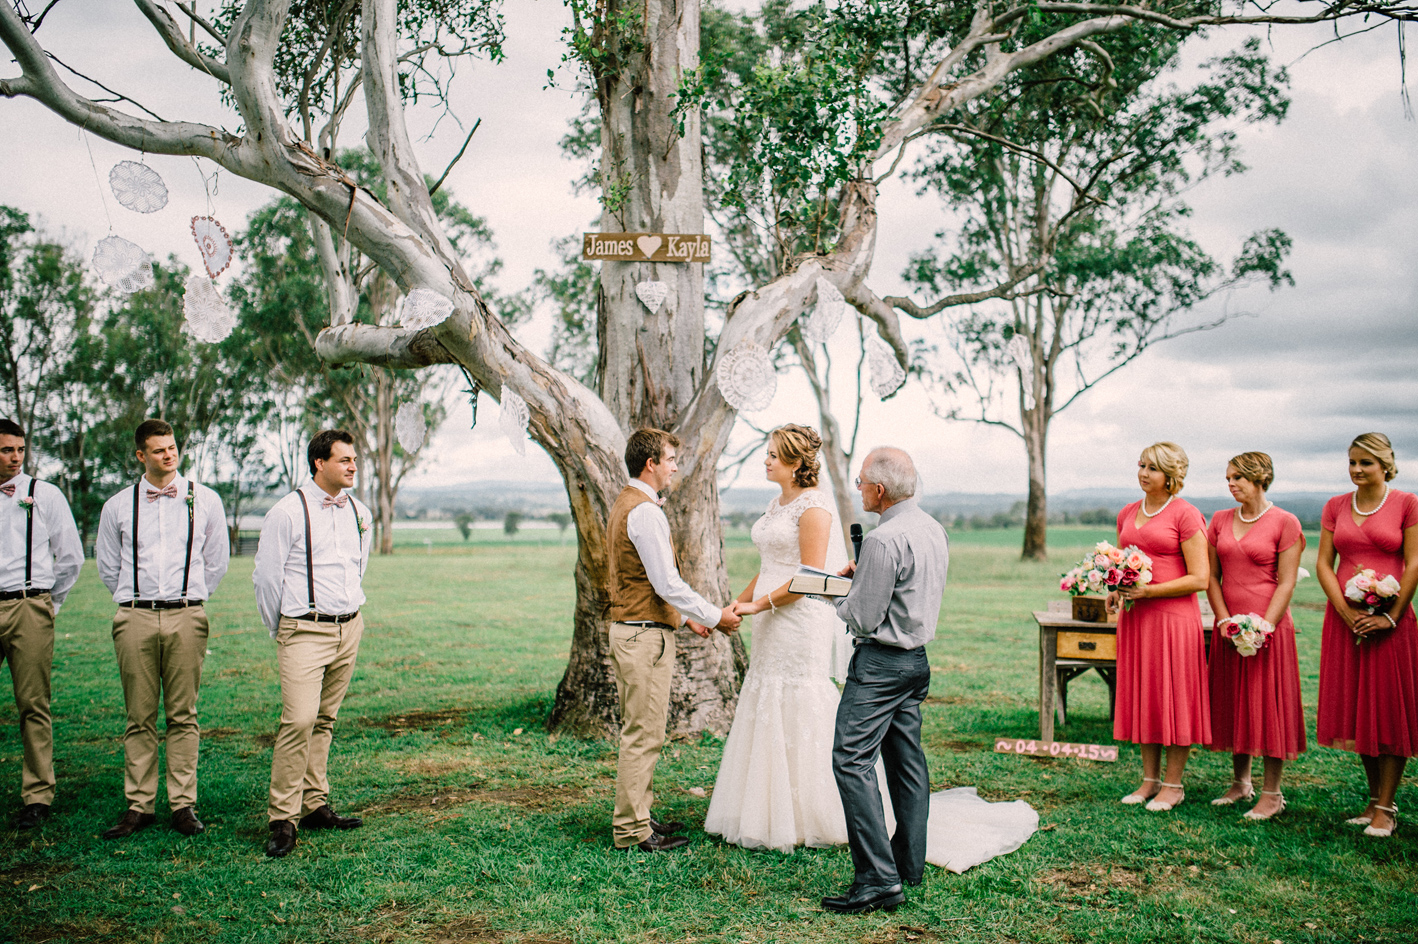 058-kayla-james-beaudesert-wedding-sophie-baker-photography